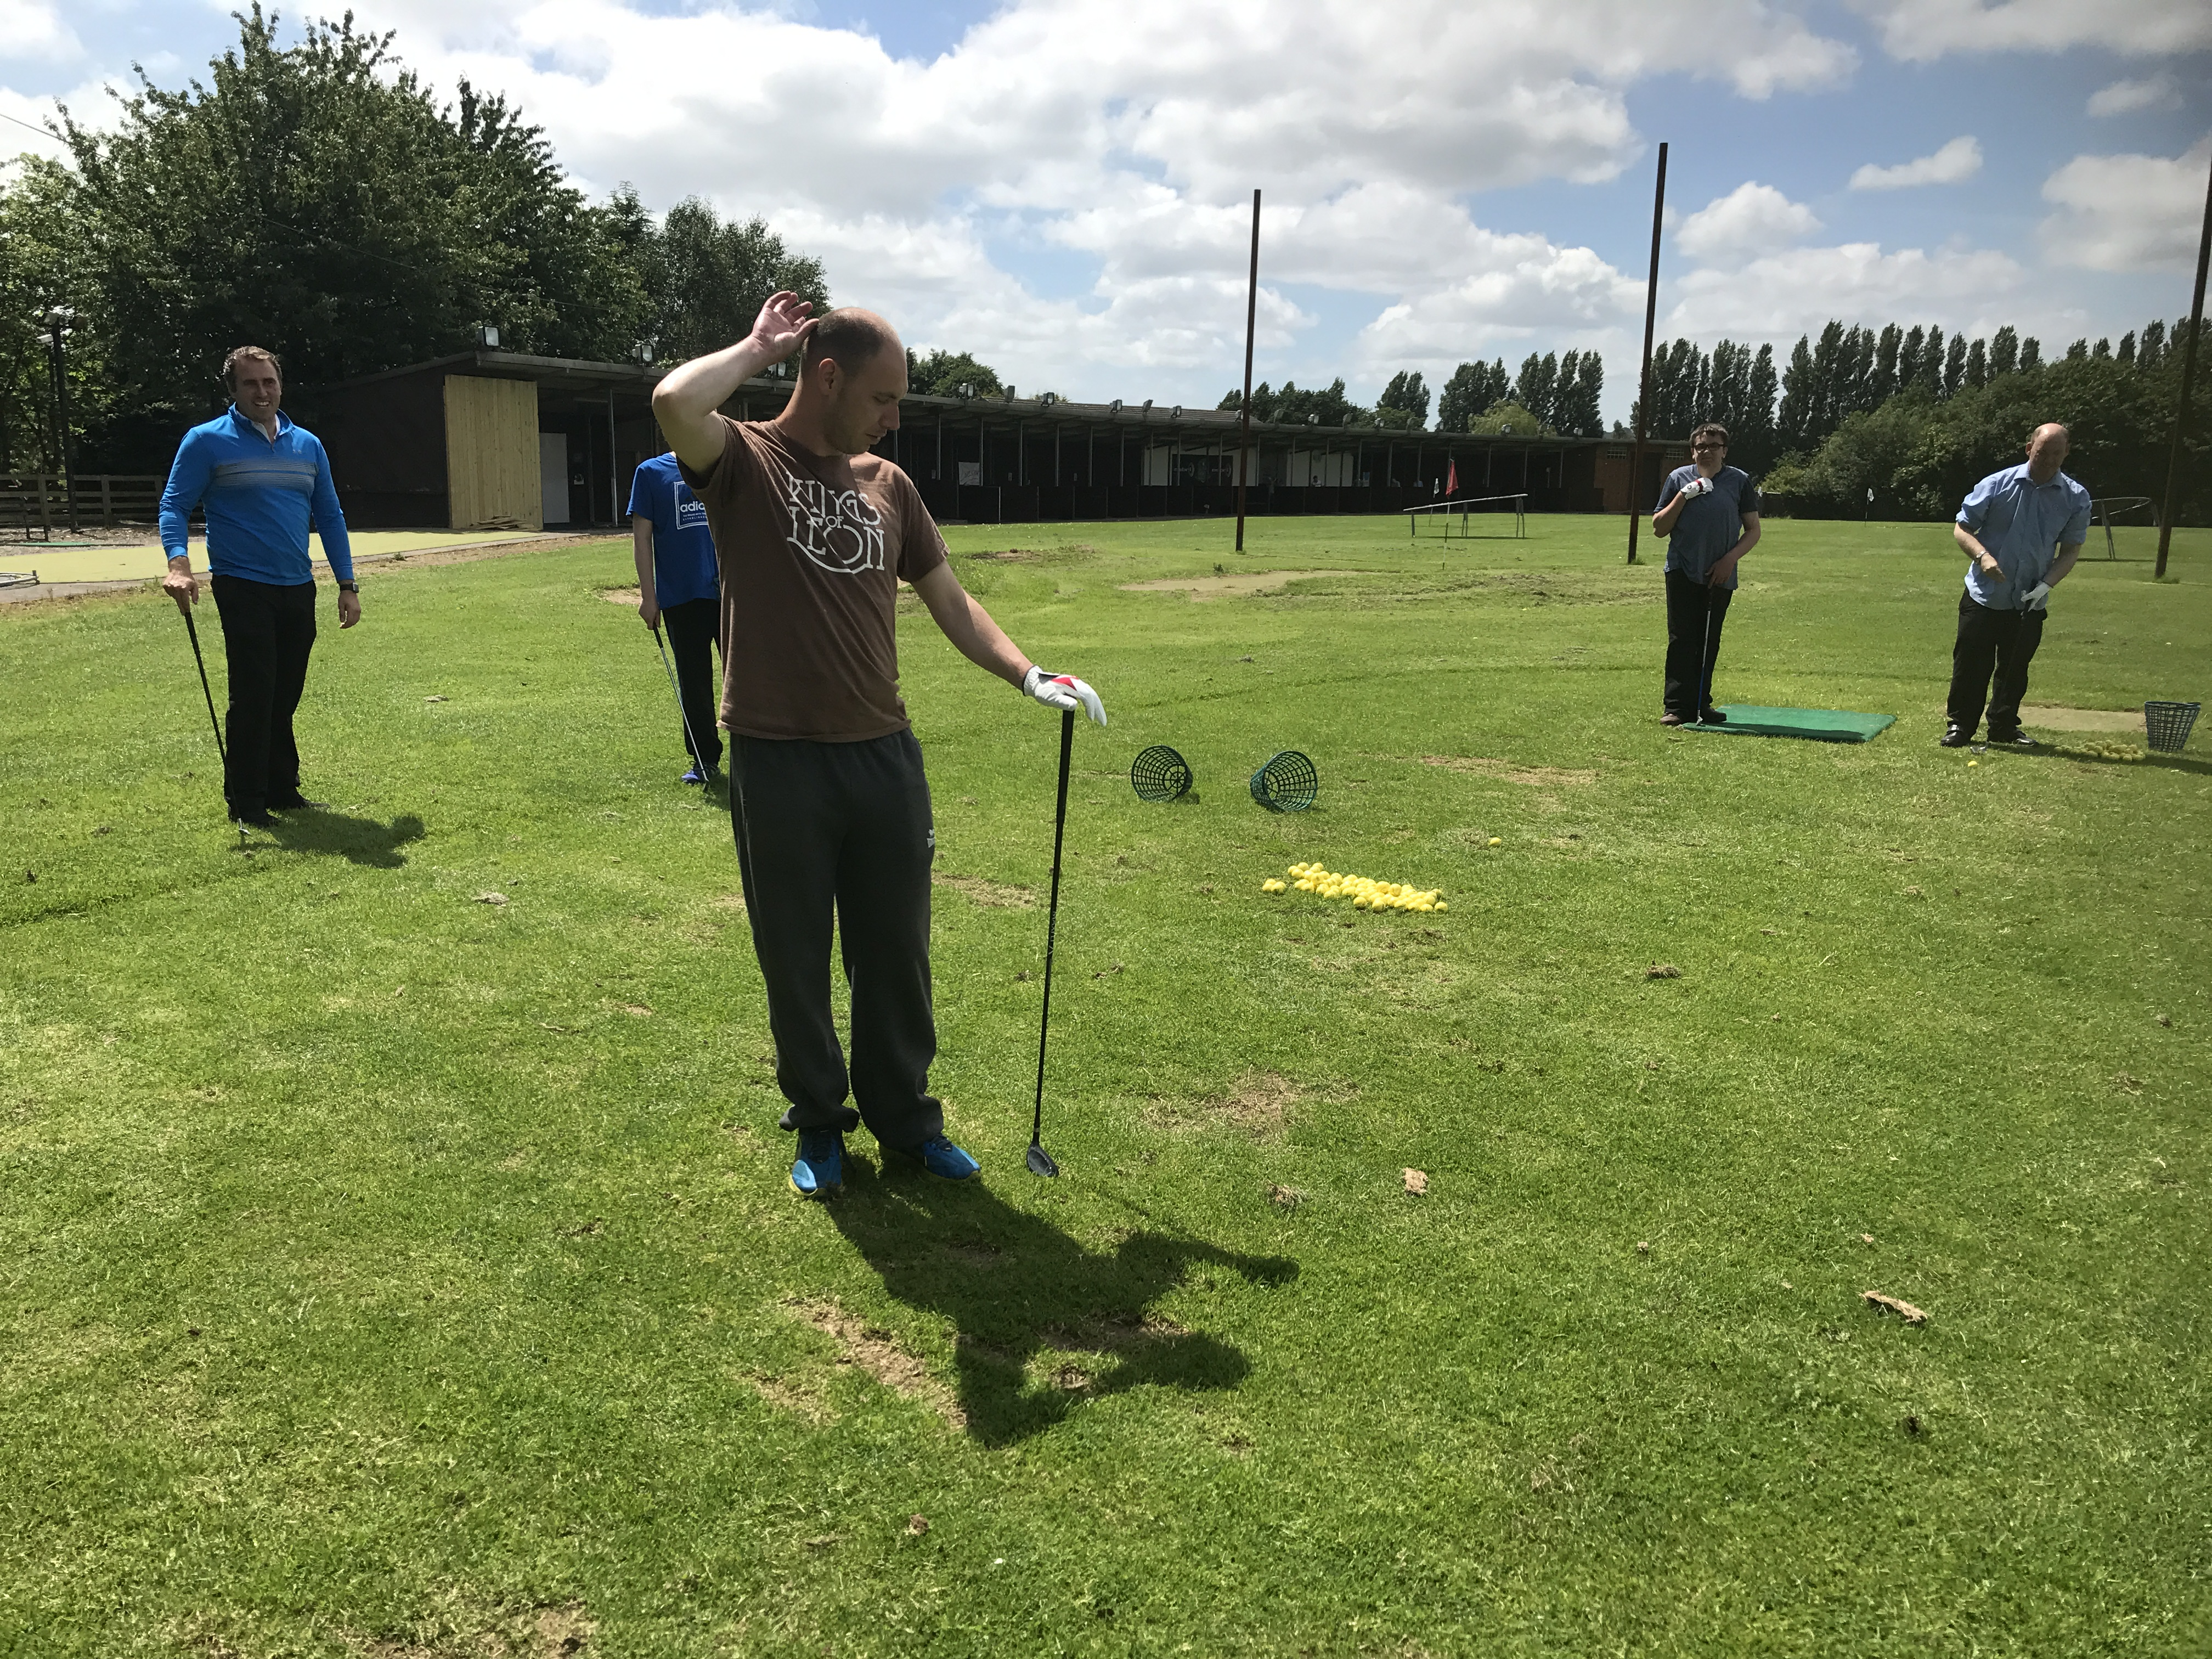 A Difficult Shot on the Pitch and Putt